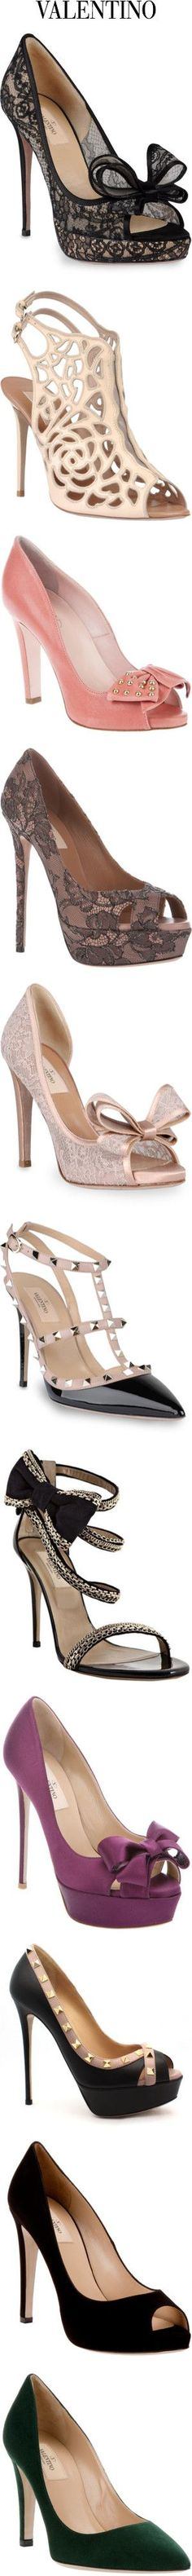 A collection of gorgeous Valentino heels, sandals and pumps!